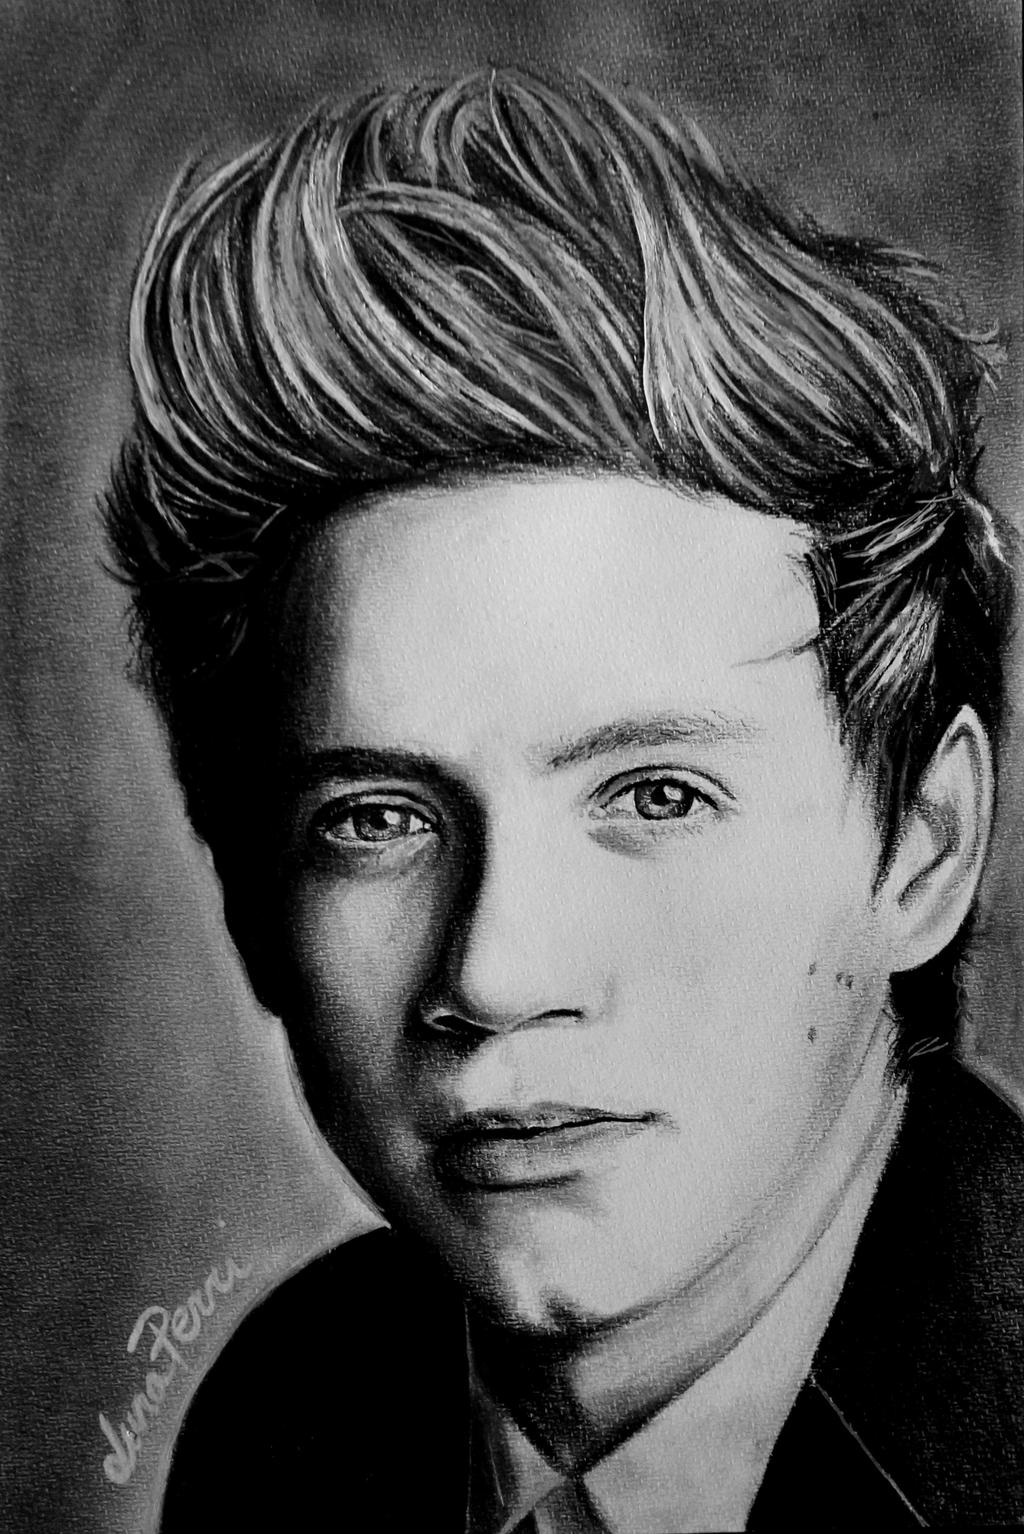 niall horan drawing 2014 wwwpixsharkcom images niall